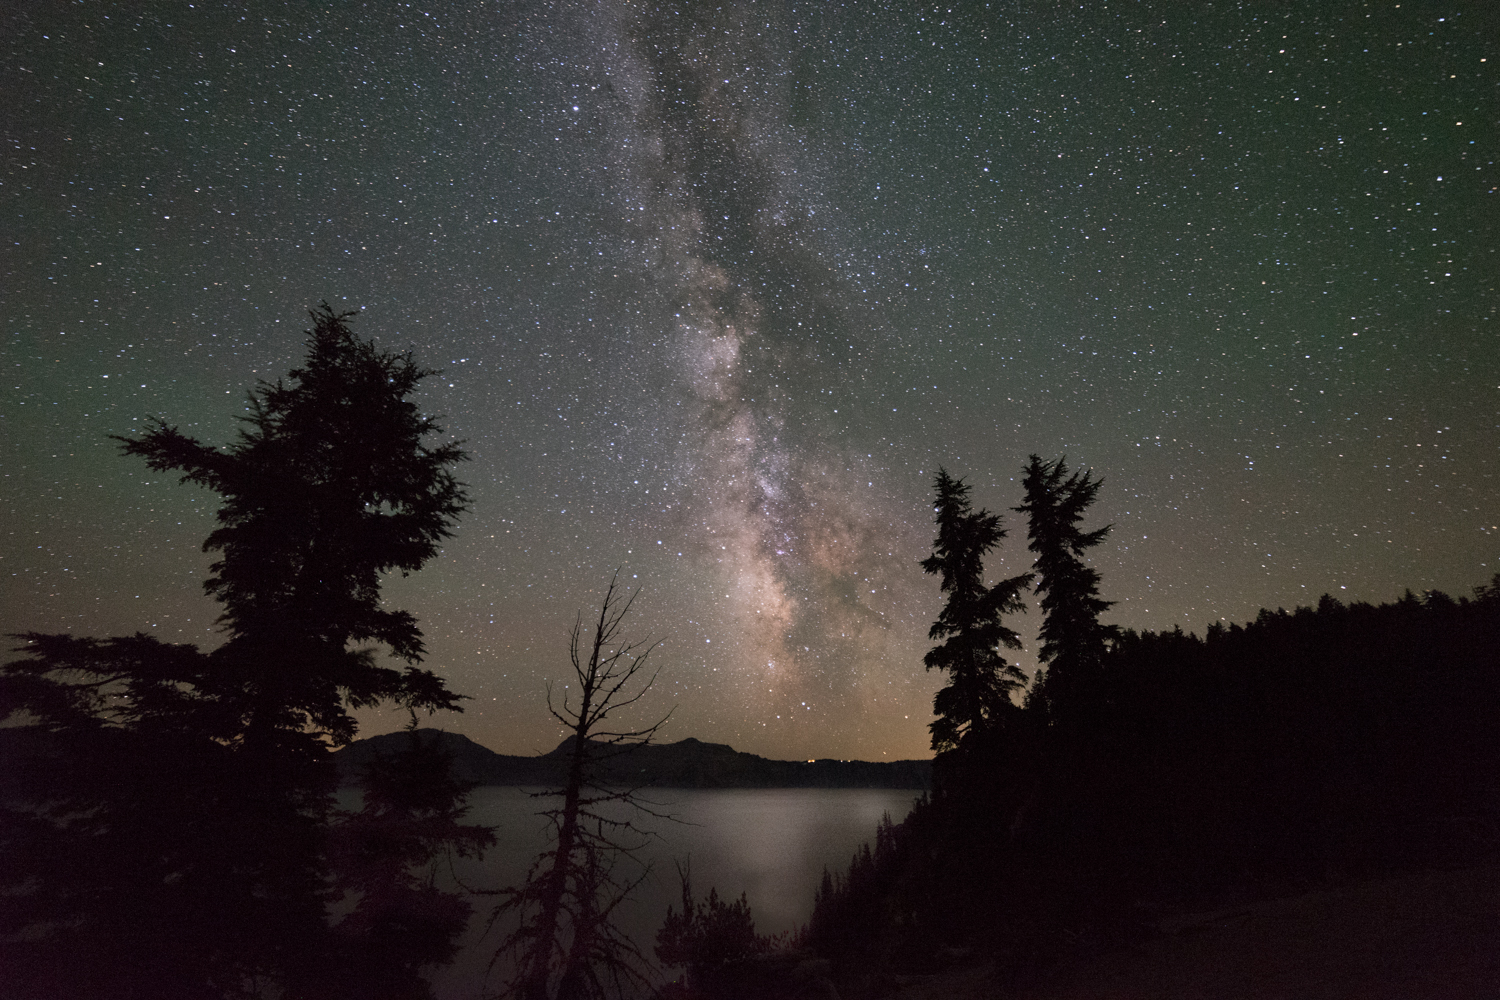 The Galactic Center of the Milky Way is framed by beautiful pine trees.